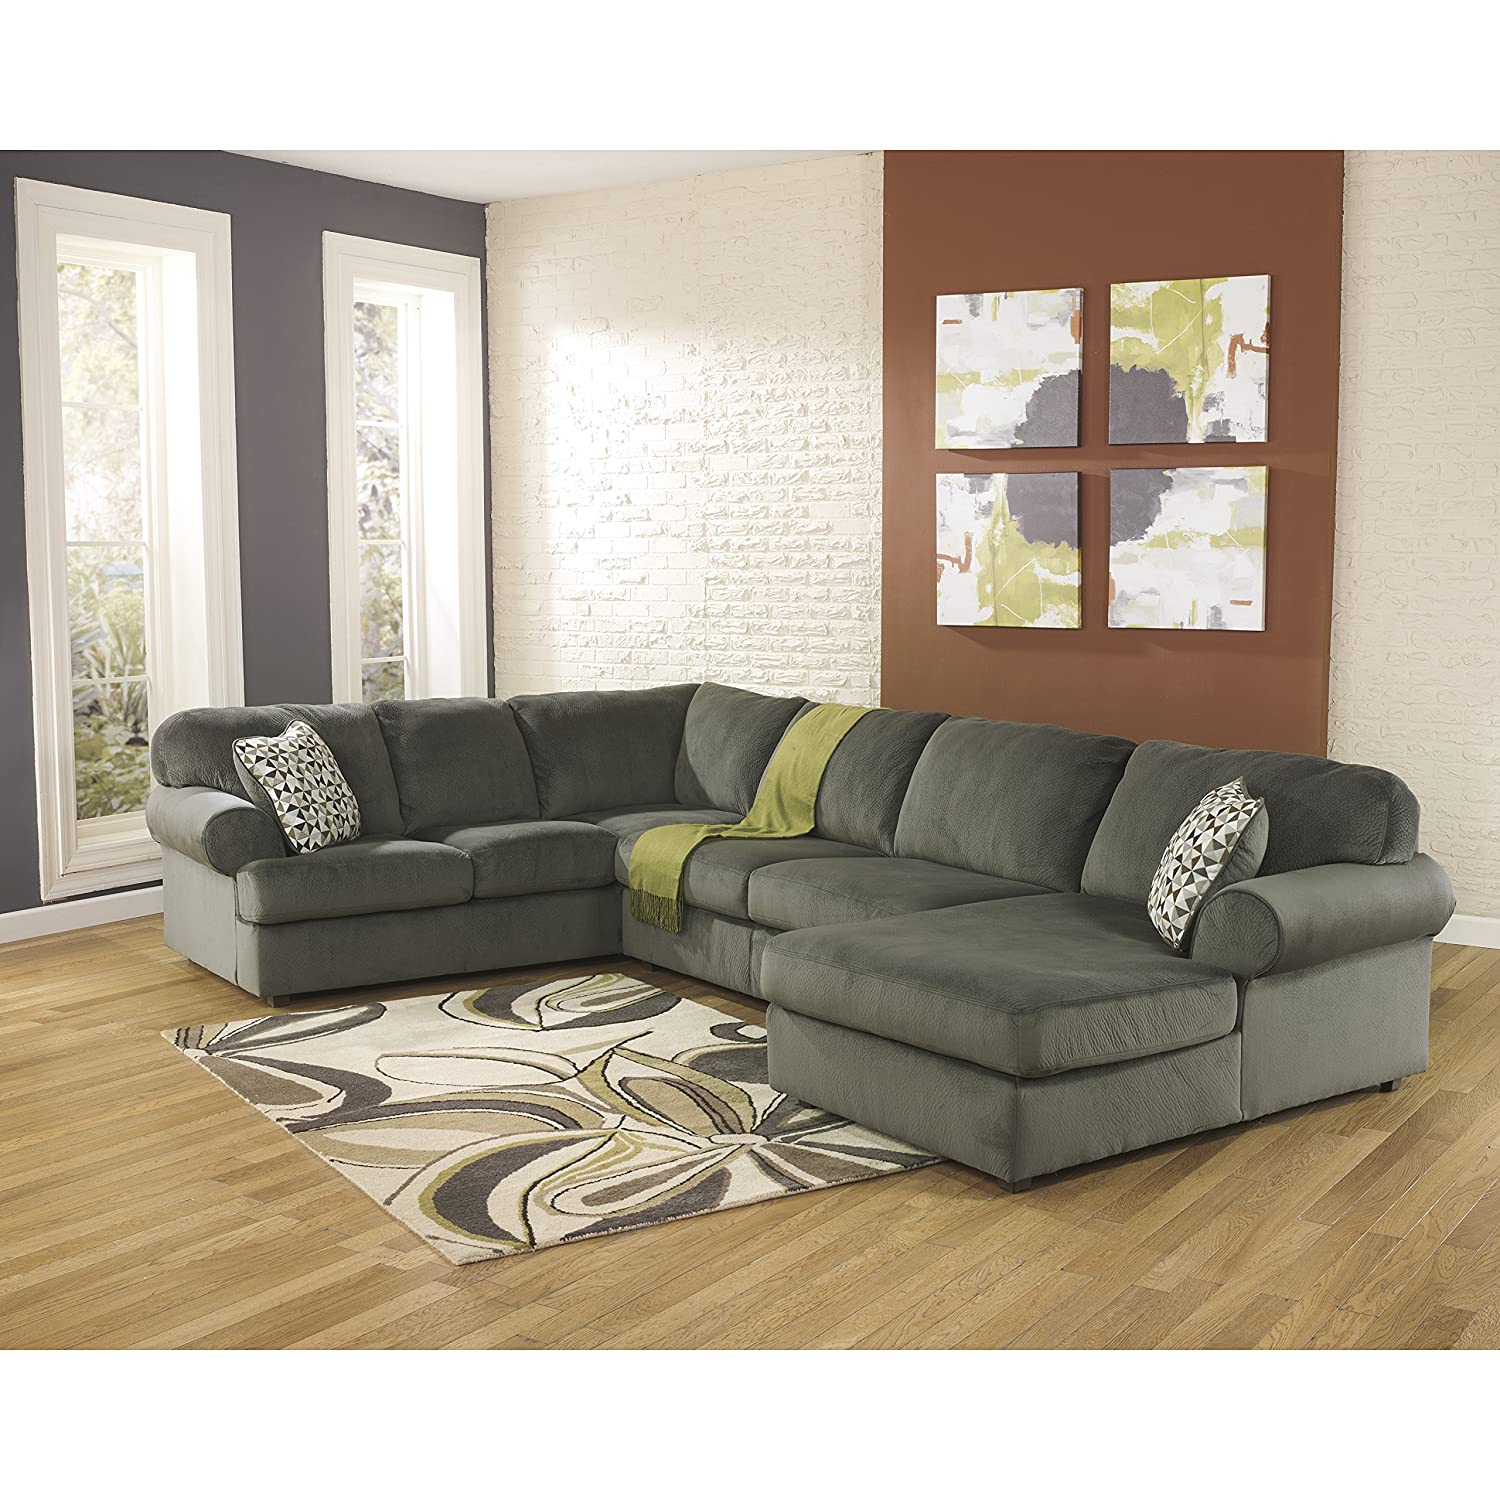 Super Signature Design By Ashley Jessa Place Sectional In Pewter Fabric Gmtry Best Dining Table And Chair Ideas Images Gmtryco